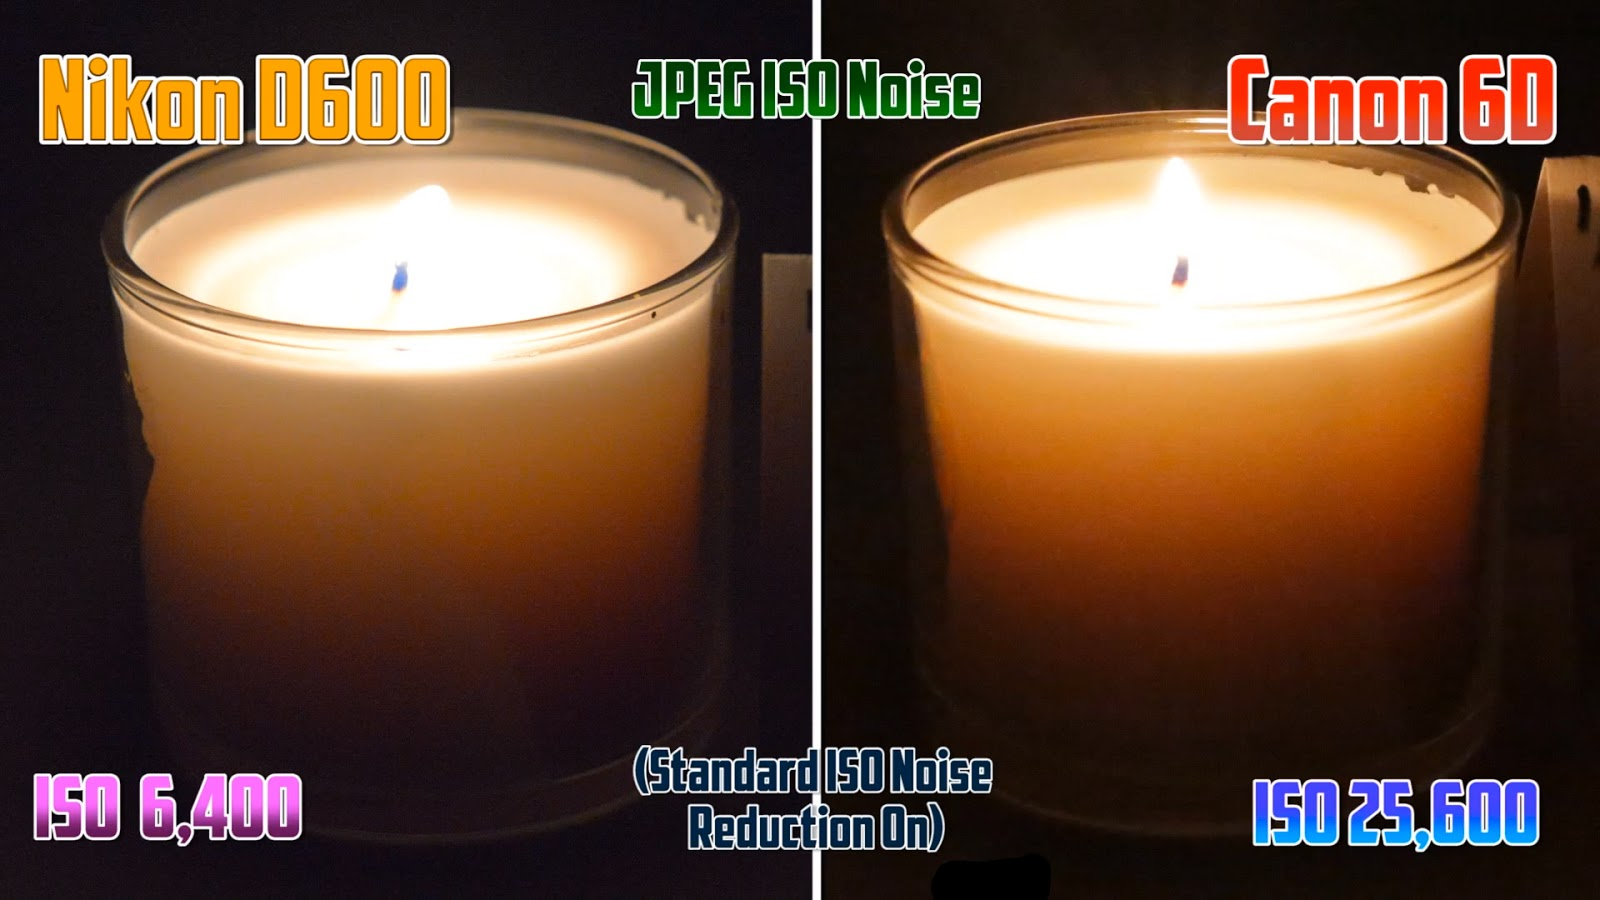 The Canon 6D's high ISO JPEG performance was about 1 to 2 stops better